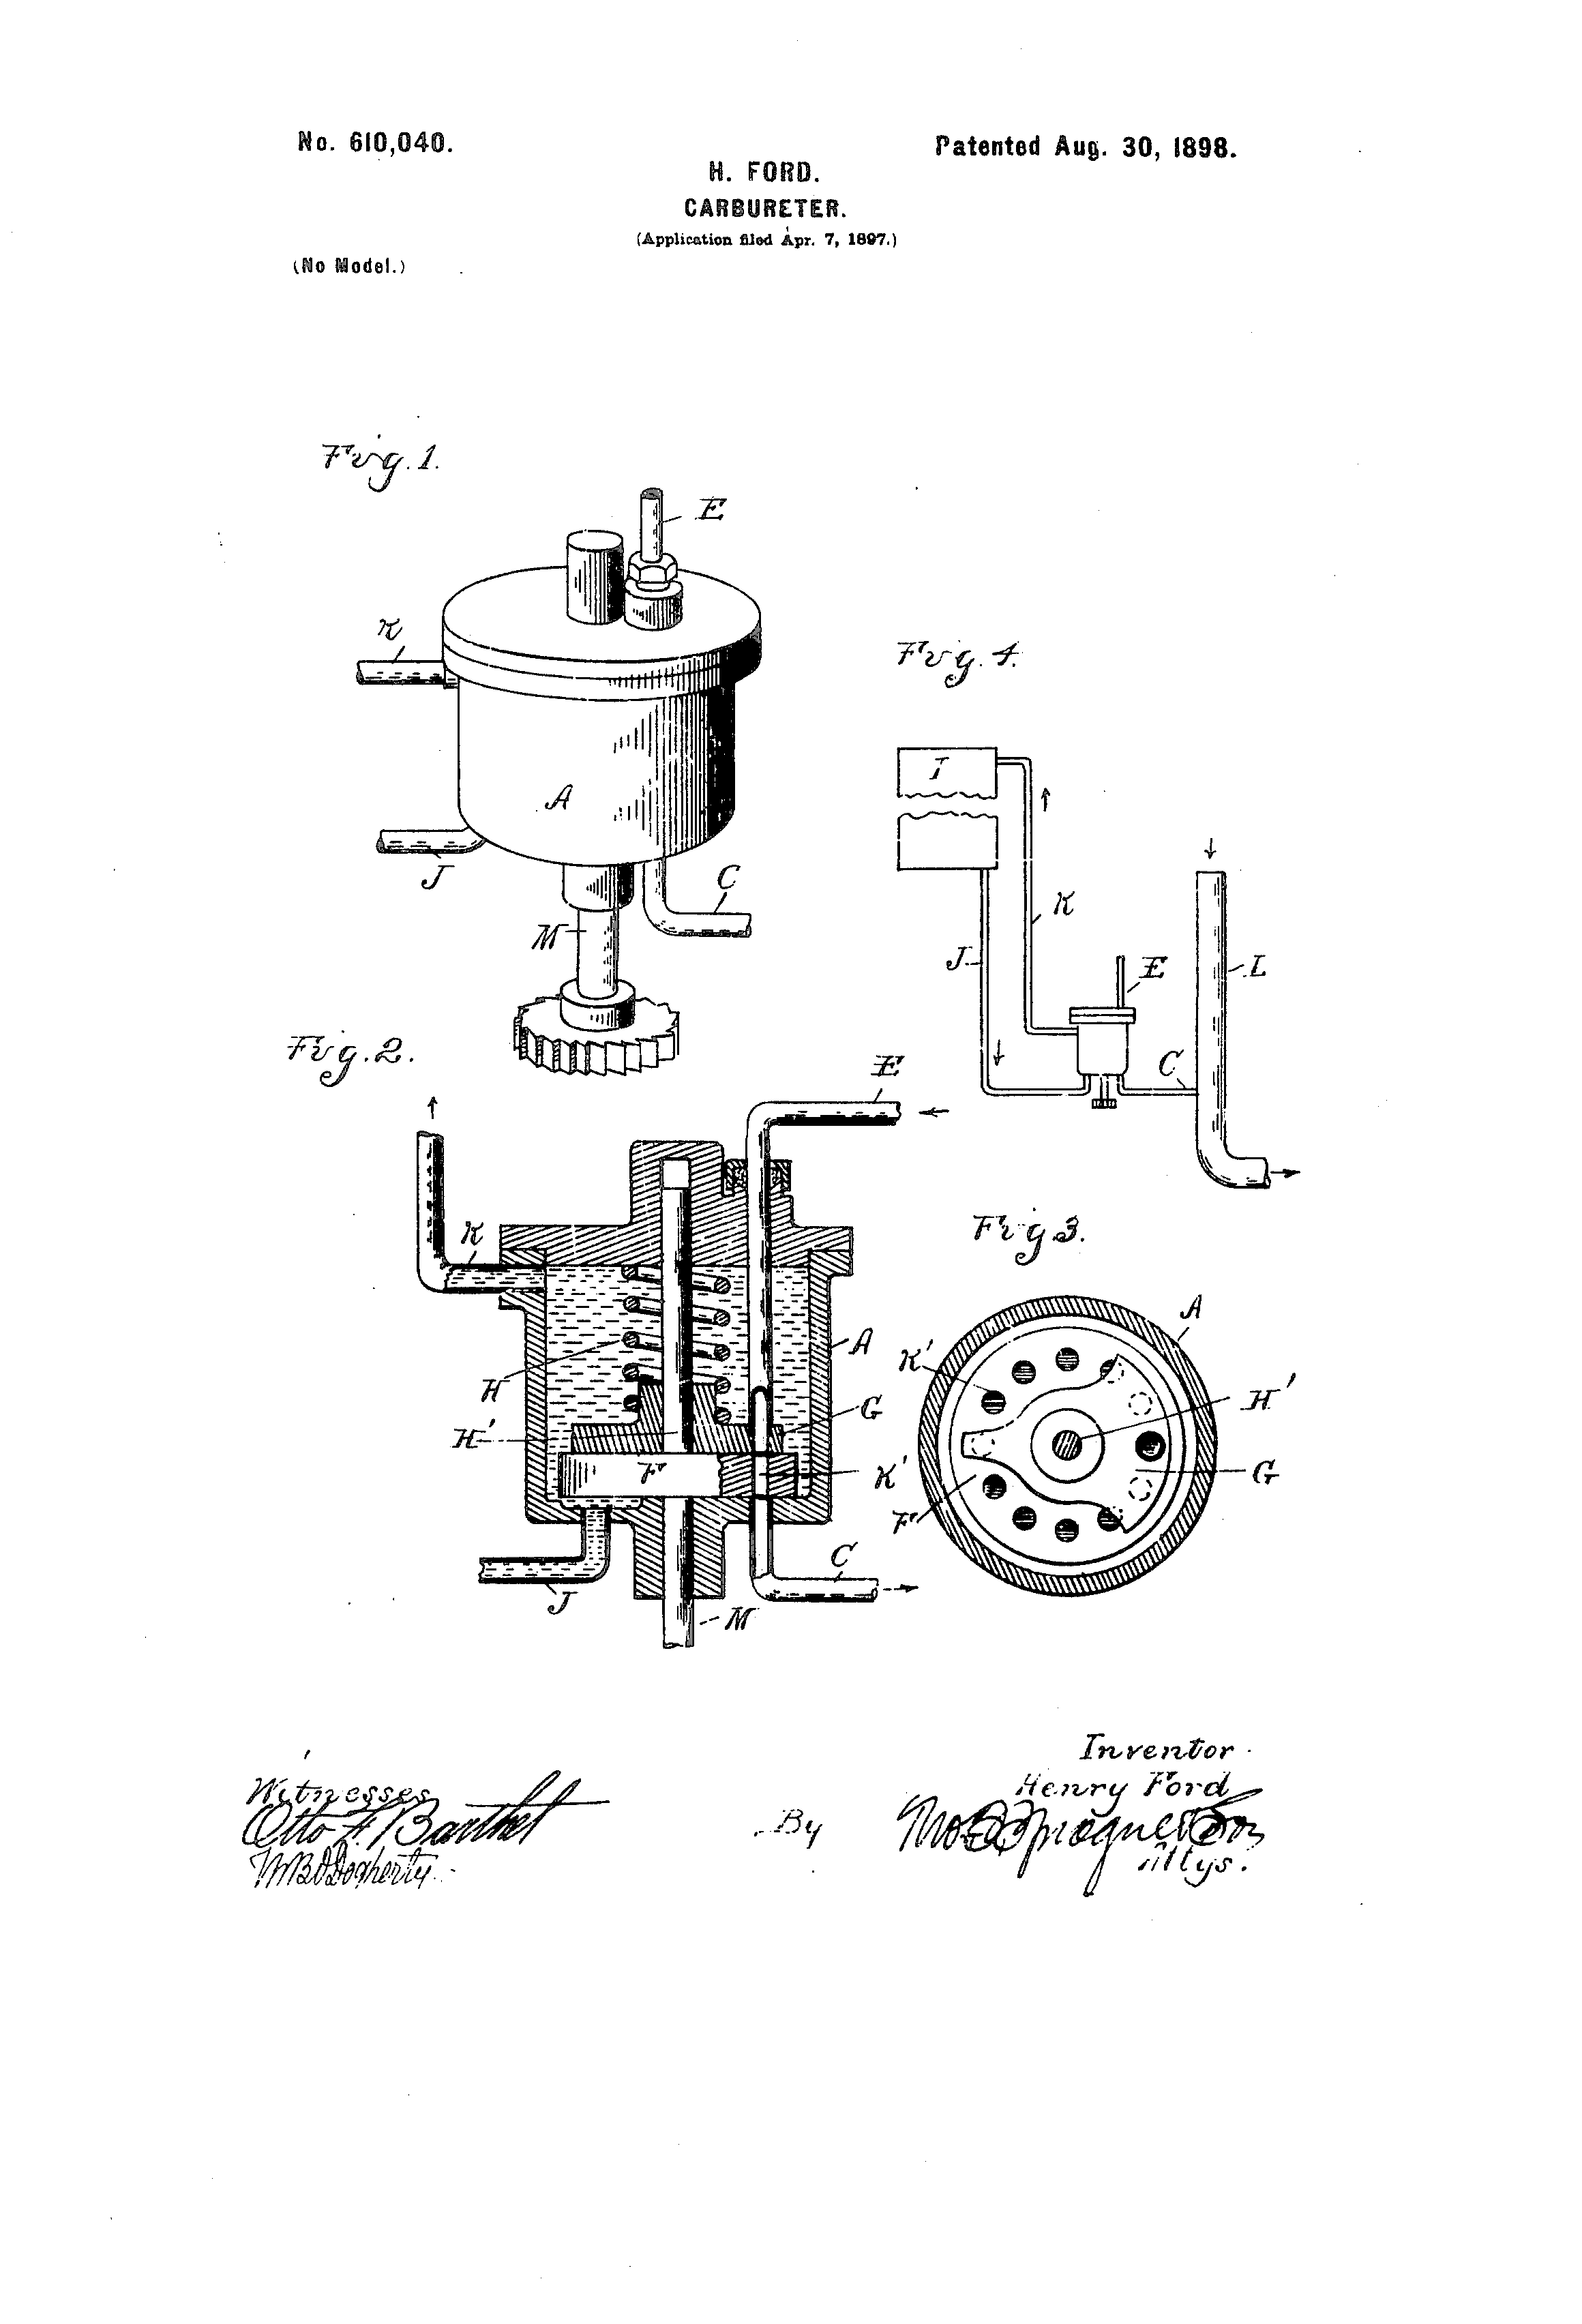 Henry Ford Random Patents #8 US 610040 Carburetor 1898